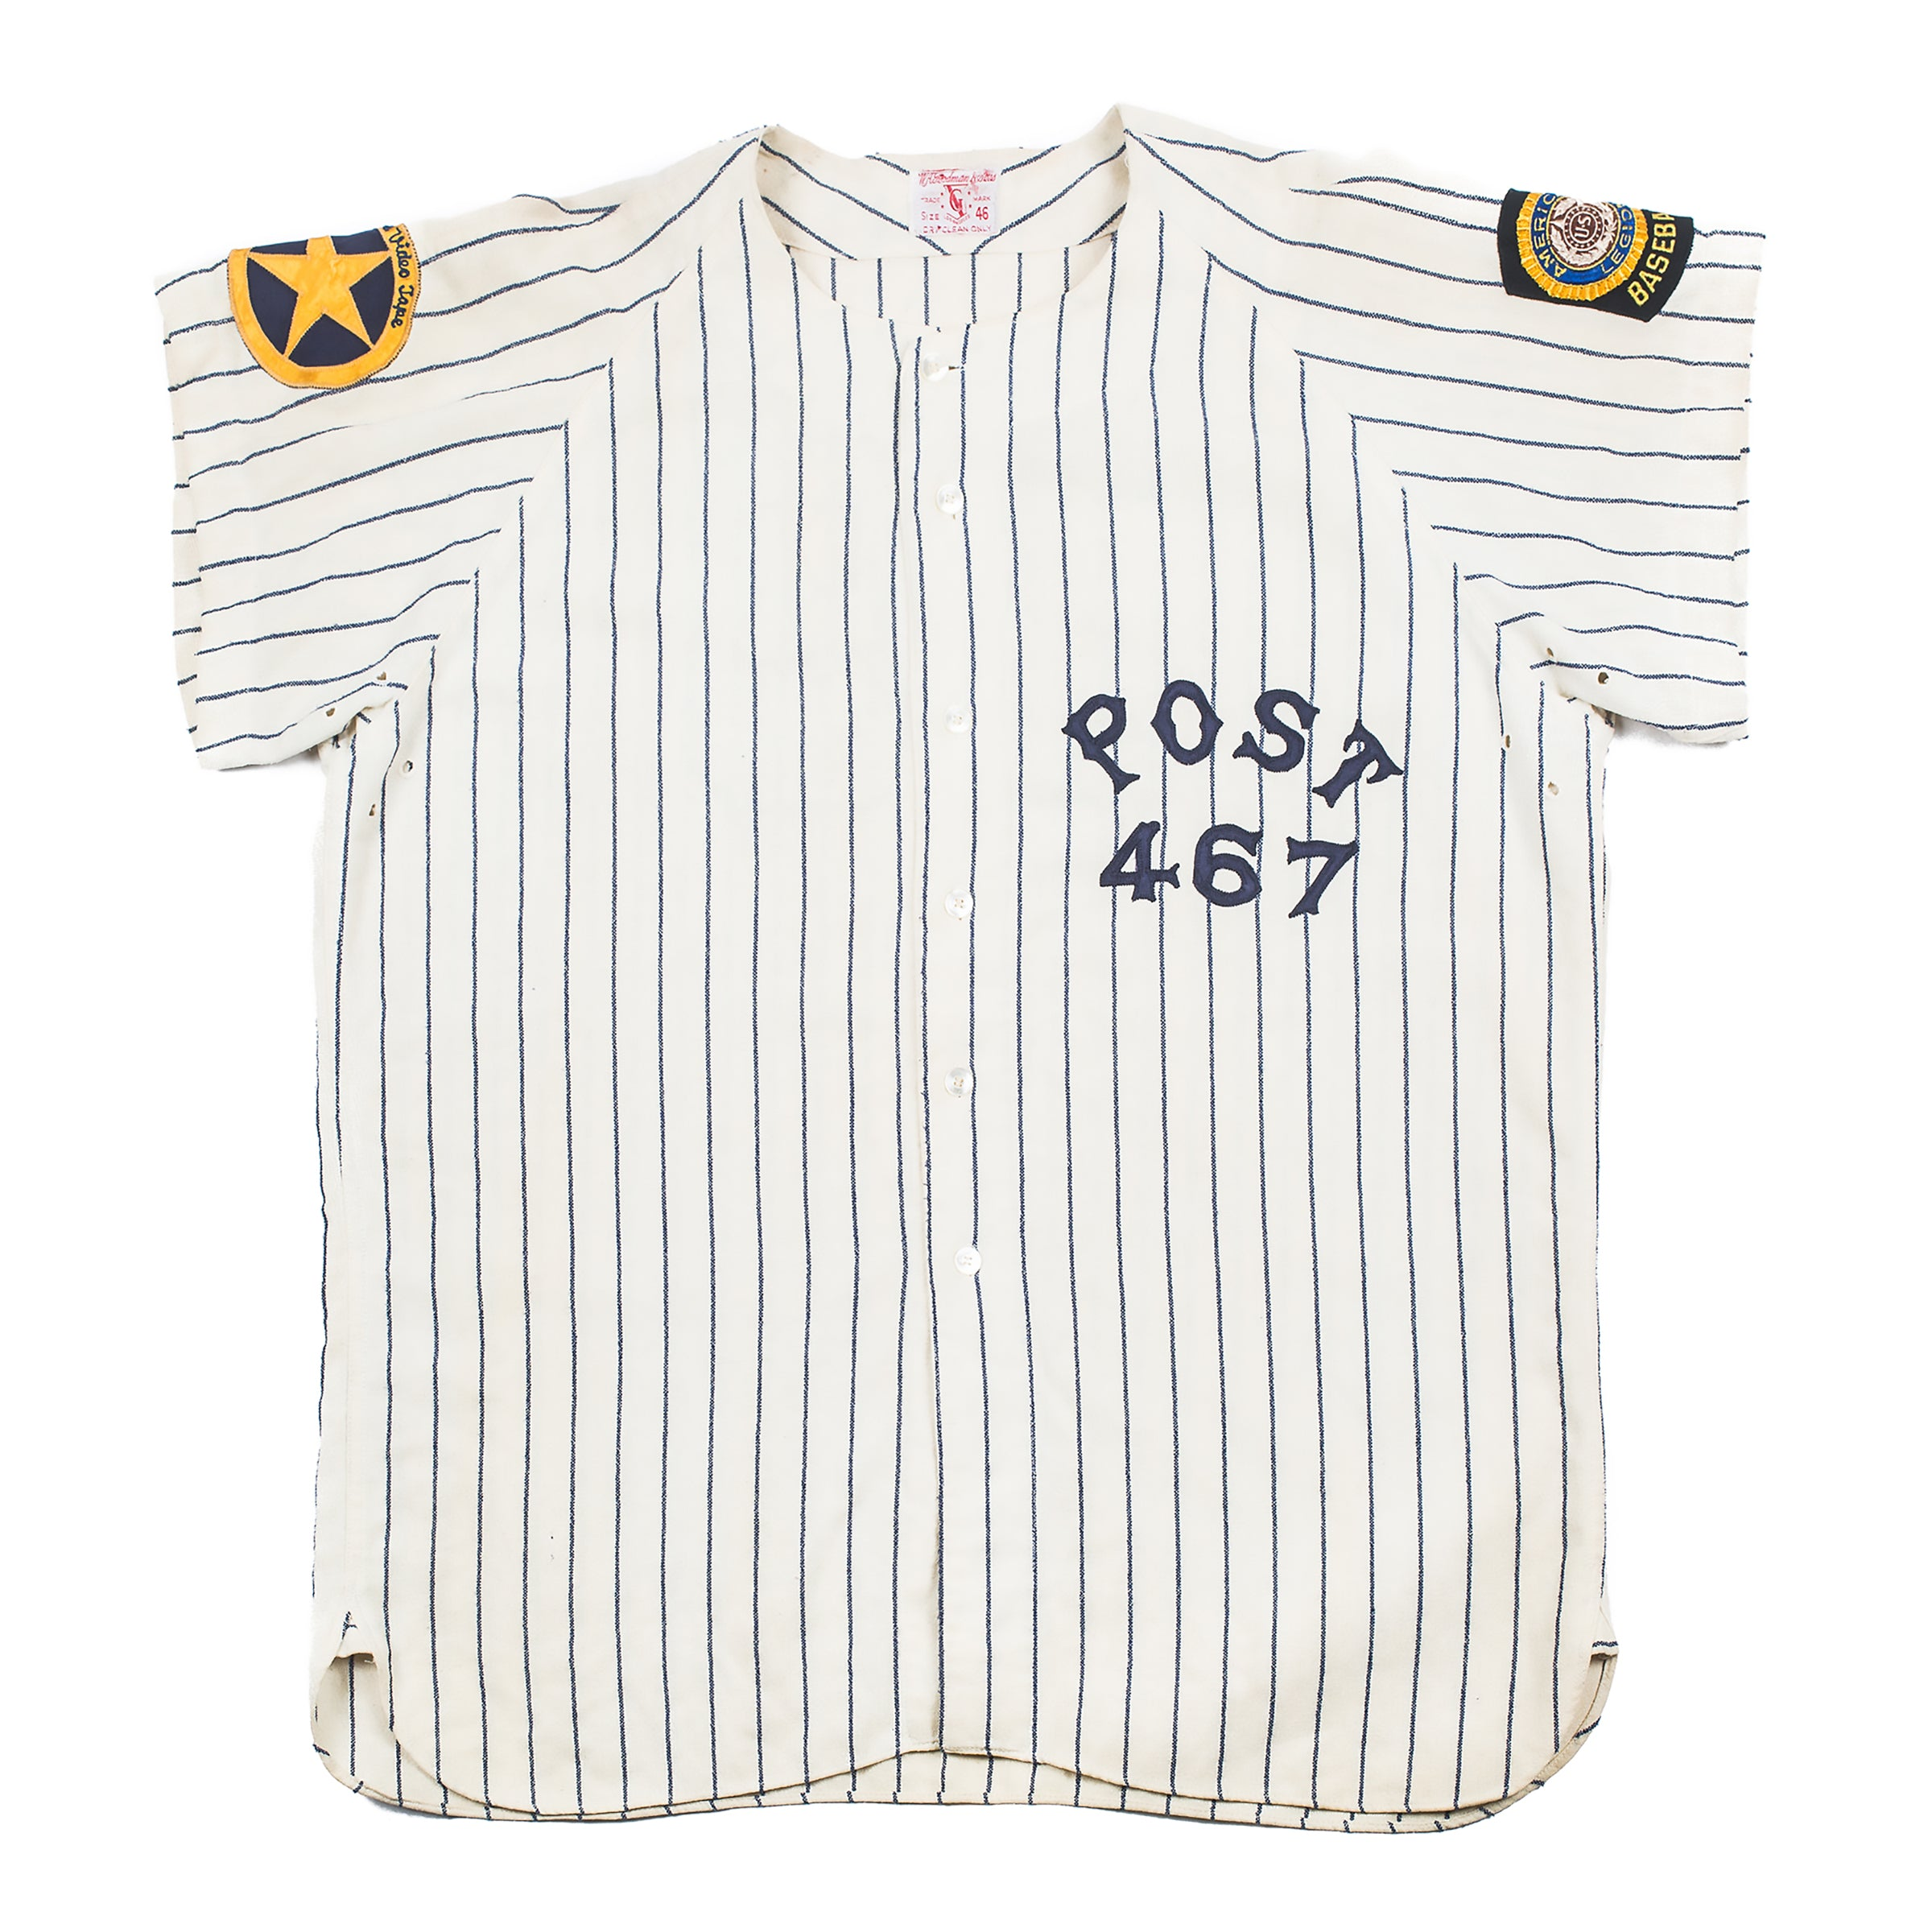 c70ffc6b77 Vintage Goodman and Sons - Post 467 Pinstripe Baseball Jersey – Better™  Gift Shop